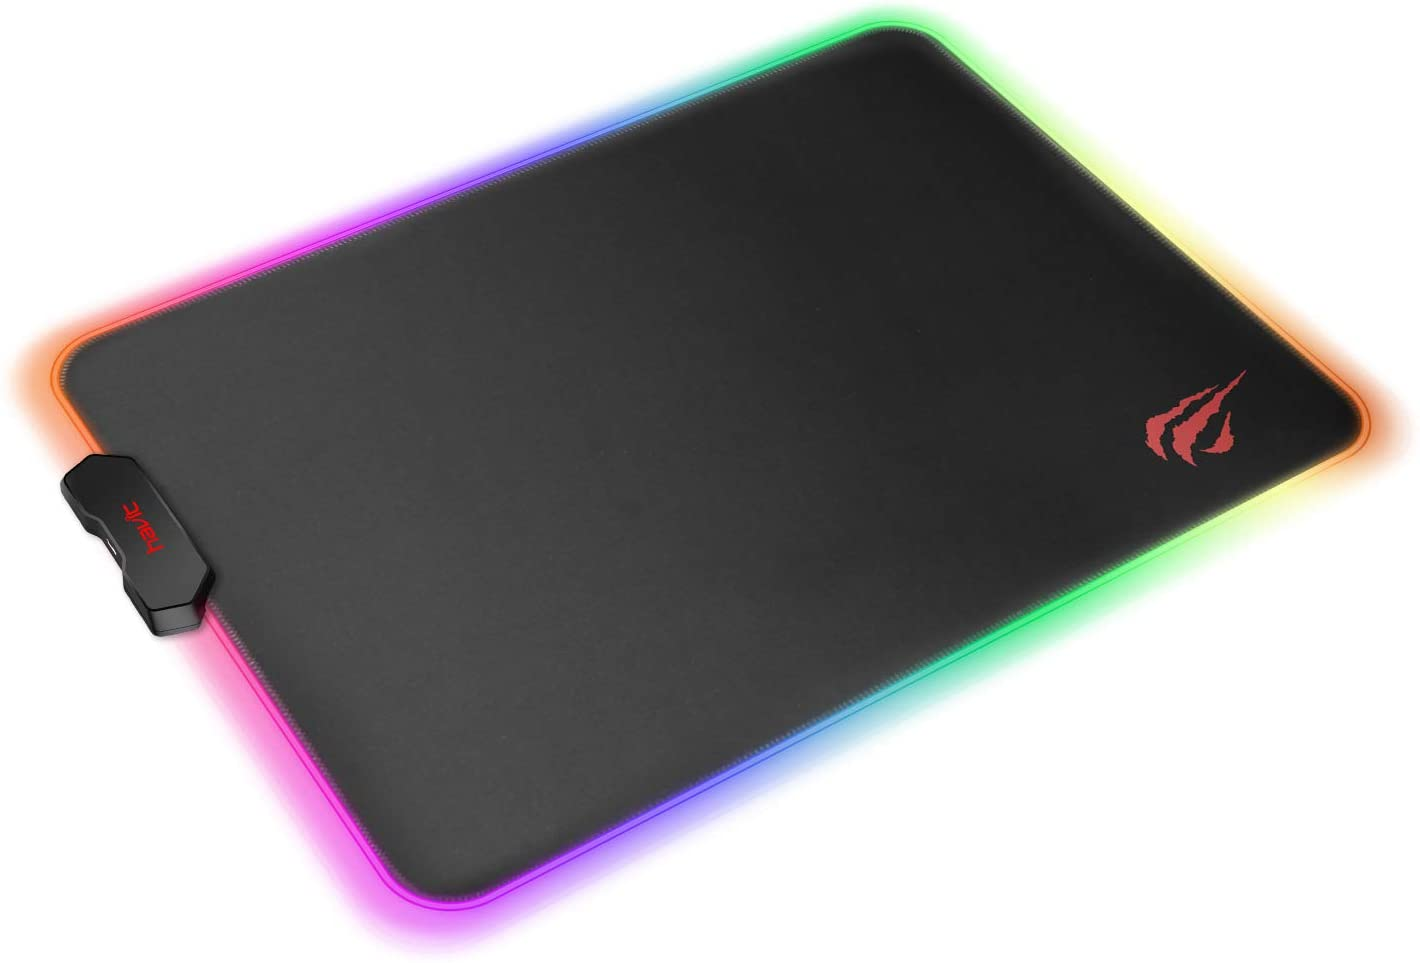 Havit RGB Gaming Mouse Pad Soft Non-Slip Rubber Base Mouse Mat for Laptop Computer PC Games (Small)